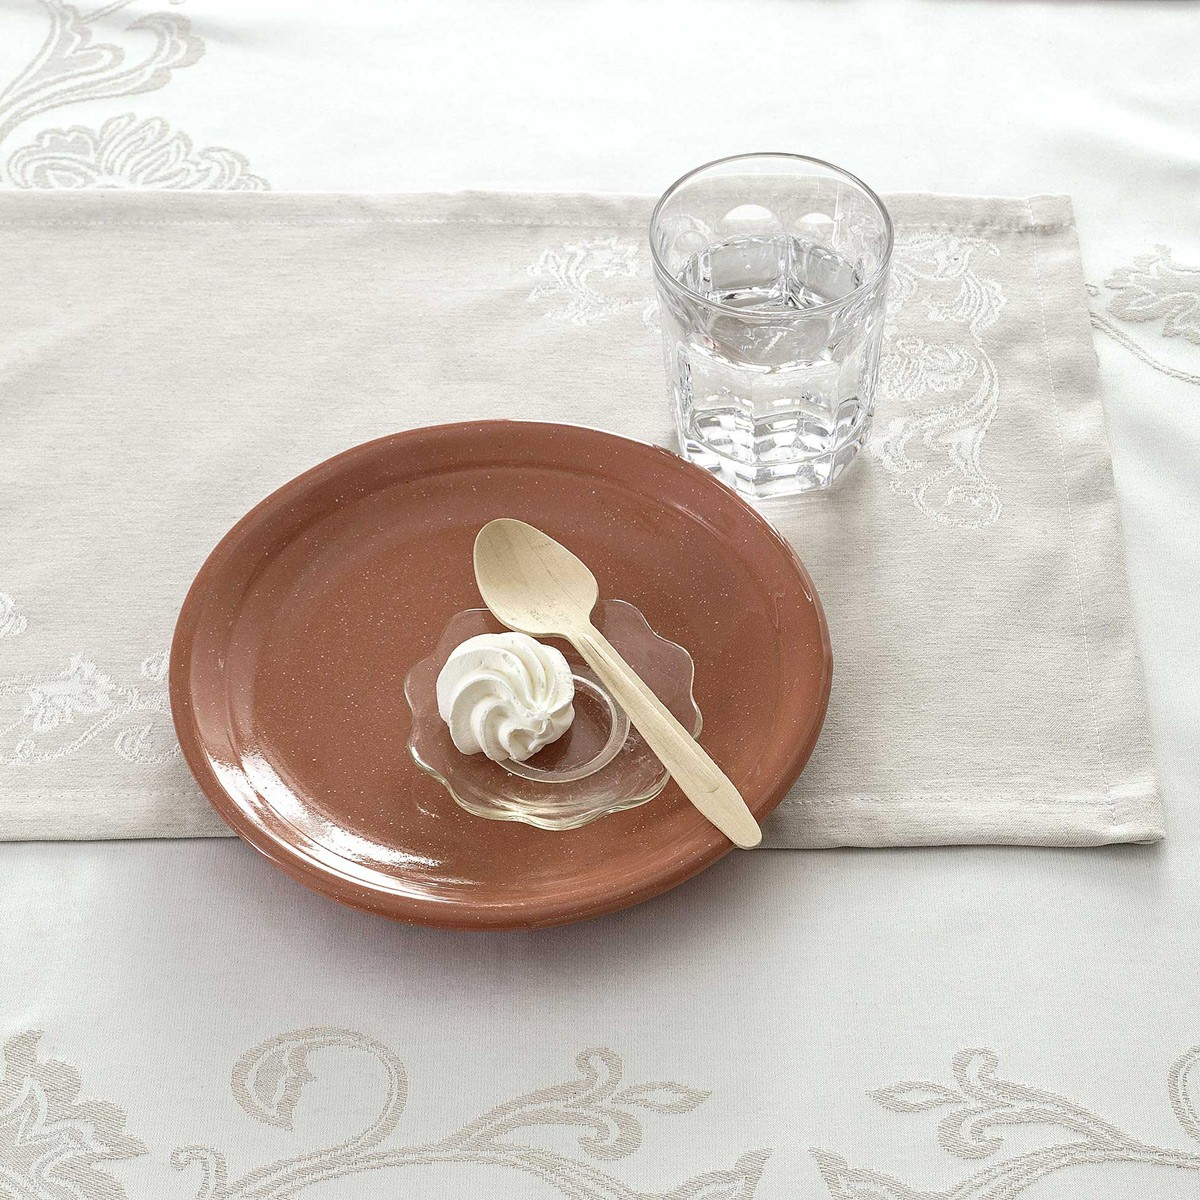 Σουπλά (Σετ 2τμχ) Nima Table Linen Elodie Beige